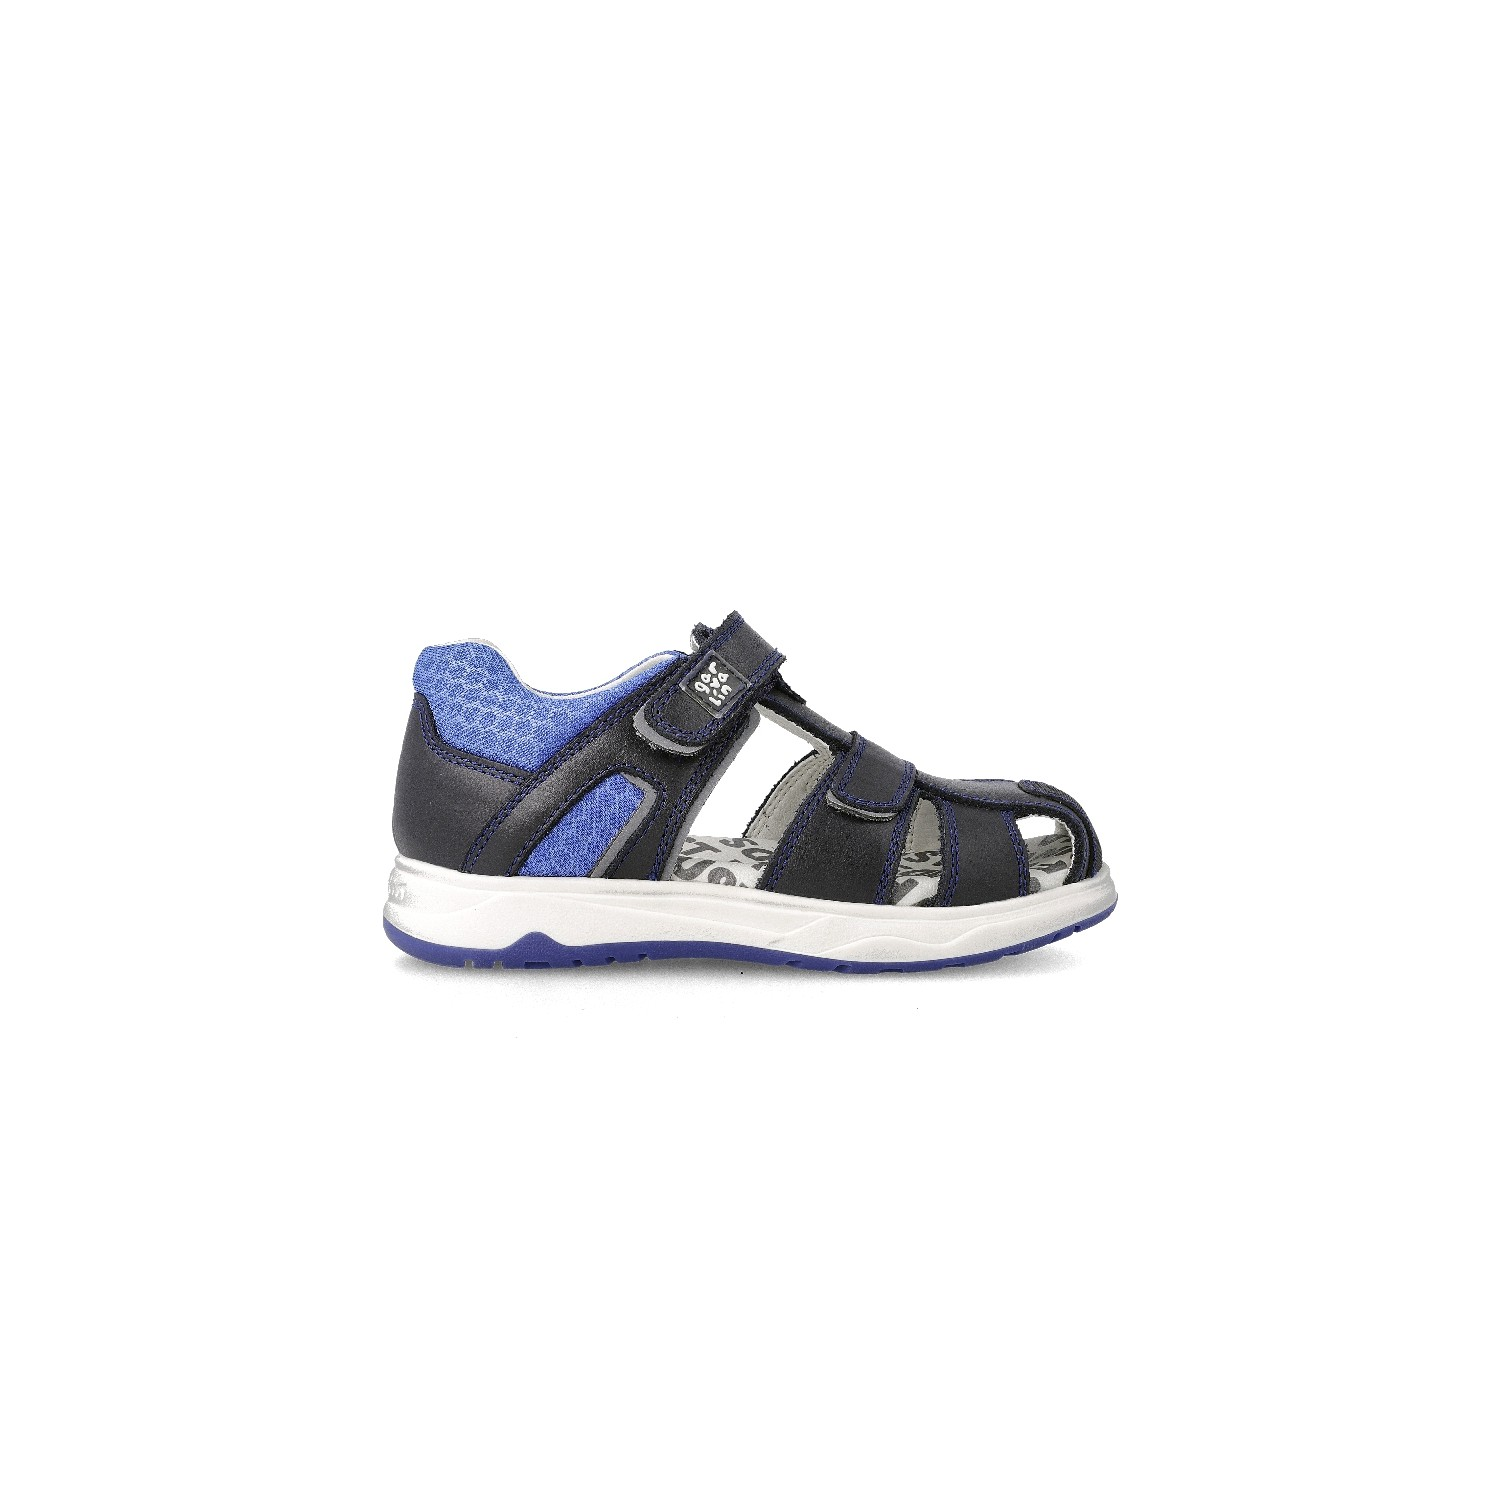 Sandals for boy Zoilo